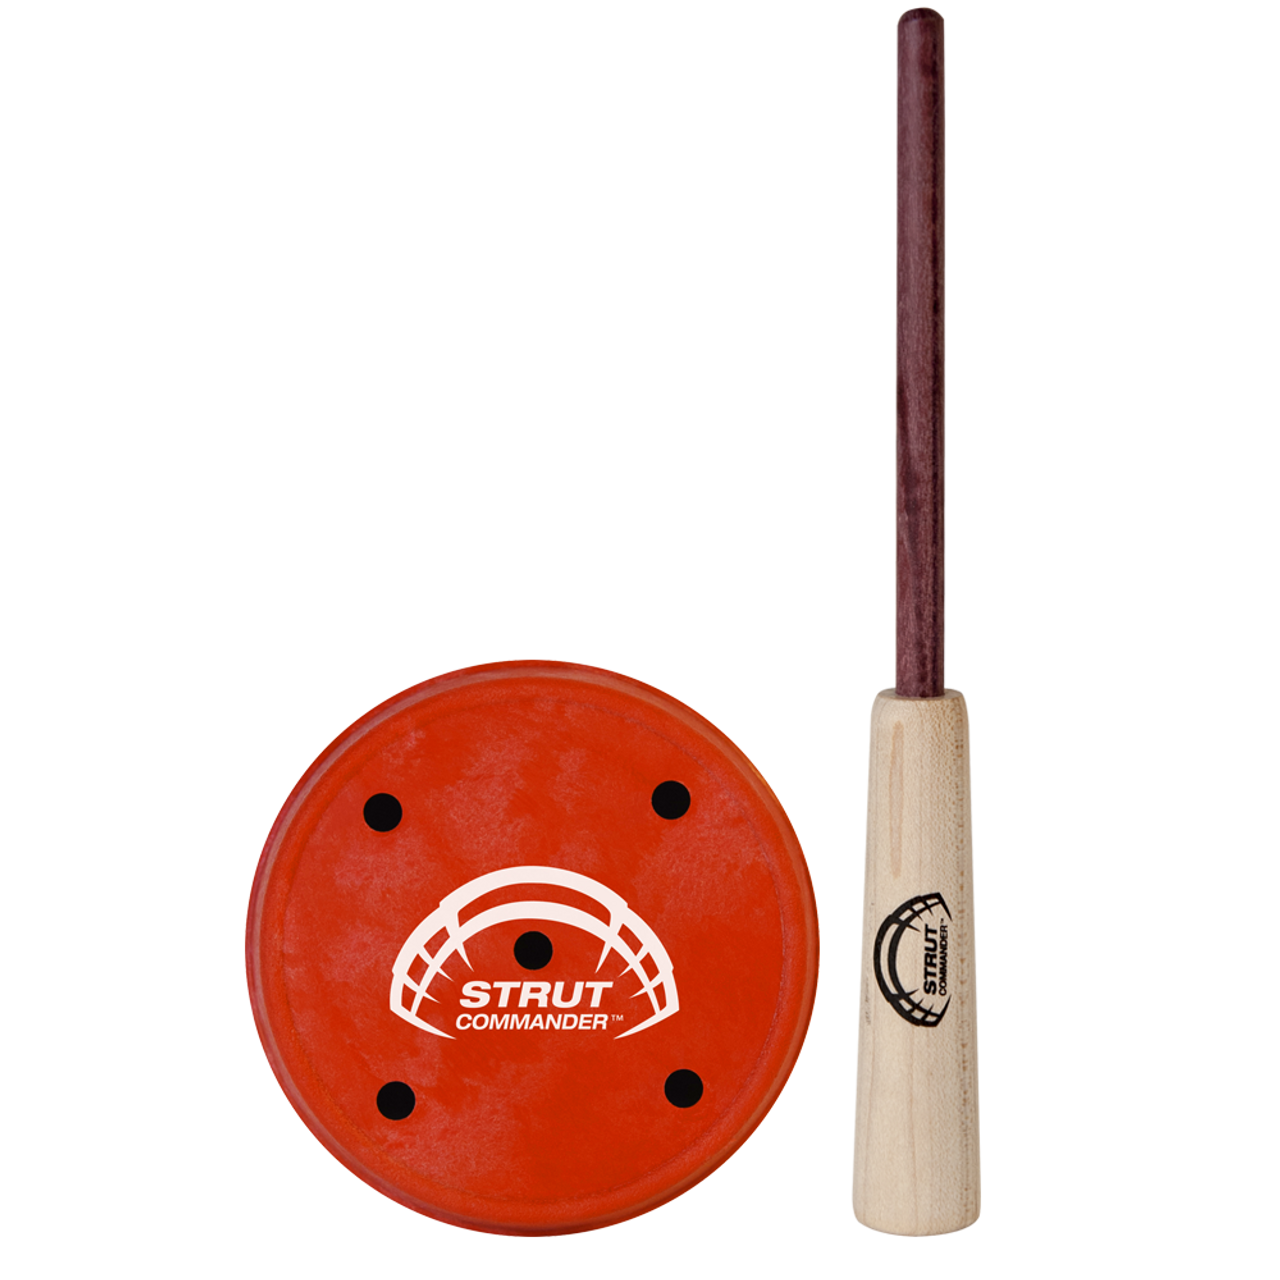 Red, polycarbonate slate pot call with the Strut Commander tail logo screen printed in white on the back and a purple heart wood striker.